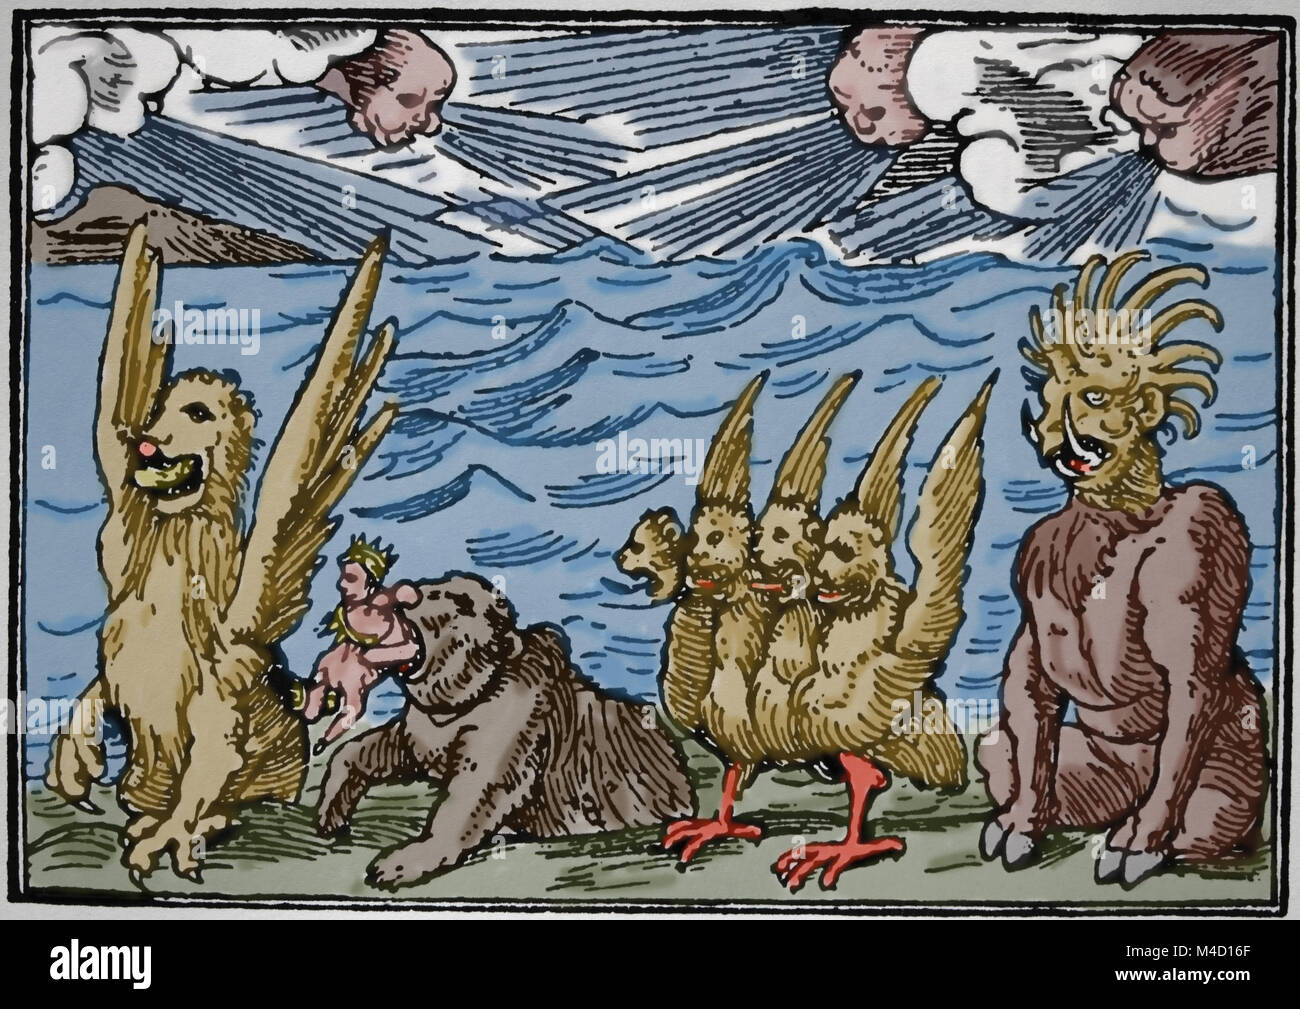 Demons by Hans Holbein the Younger. 'Historiaurm Veteris Testamenti Icones', 1543. - Stock Image